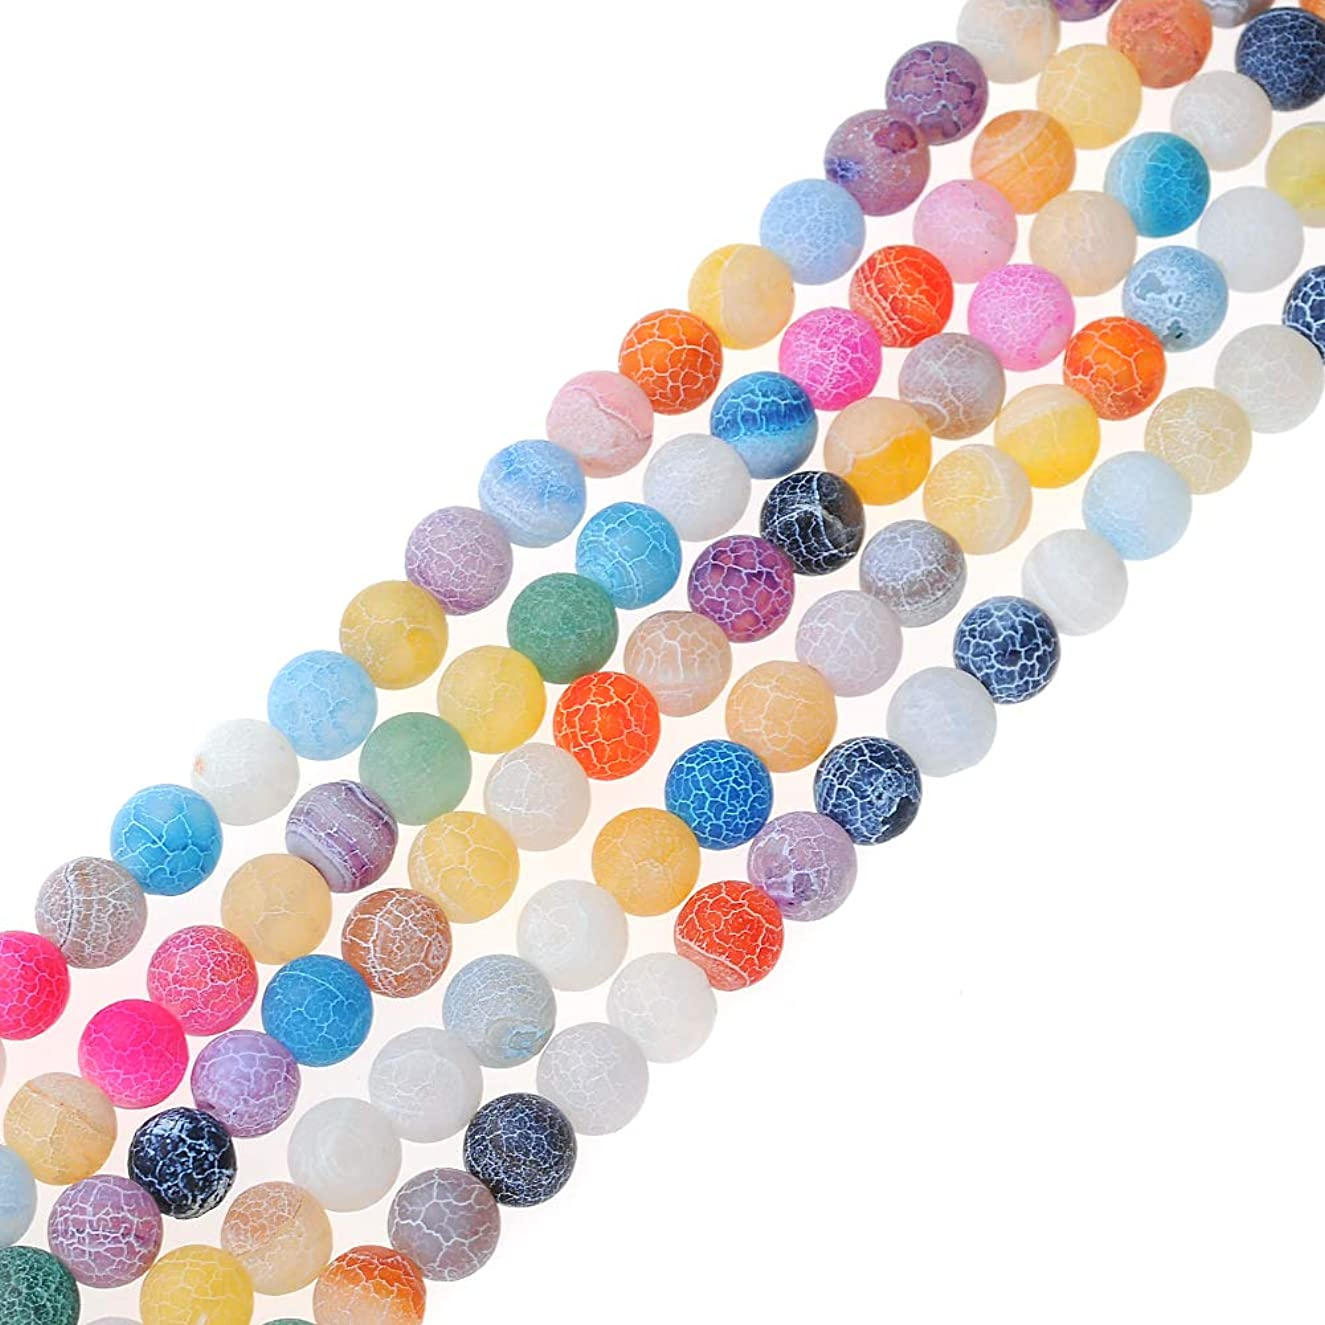 FANGQUN Natural Frosted Beads for Jewelry Making Natural Stone Loose Beads for Bracelets Necklace Anklets(6mm, 60pcs)